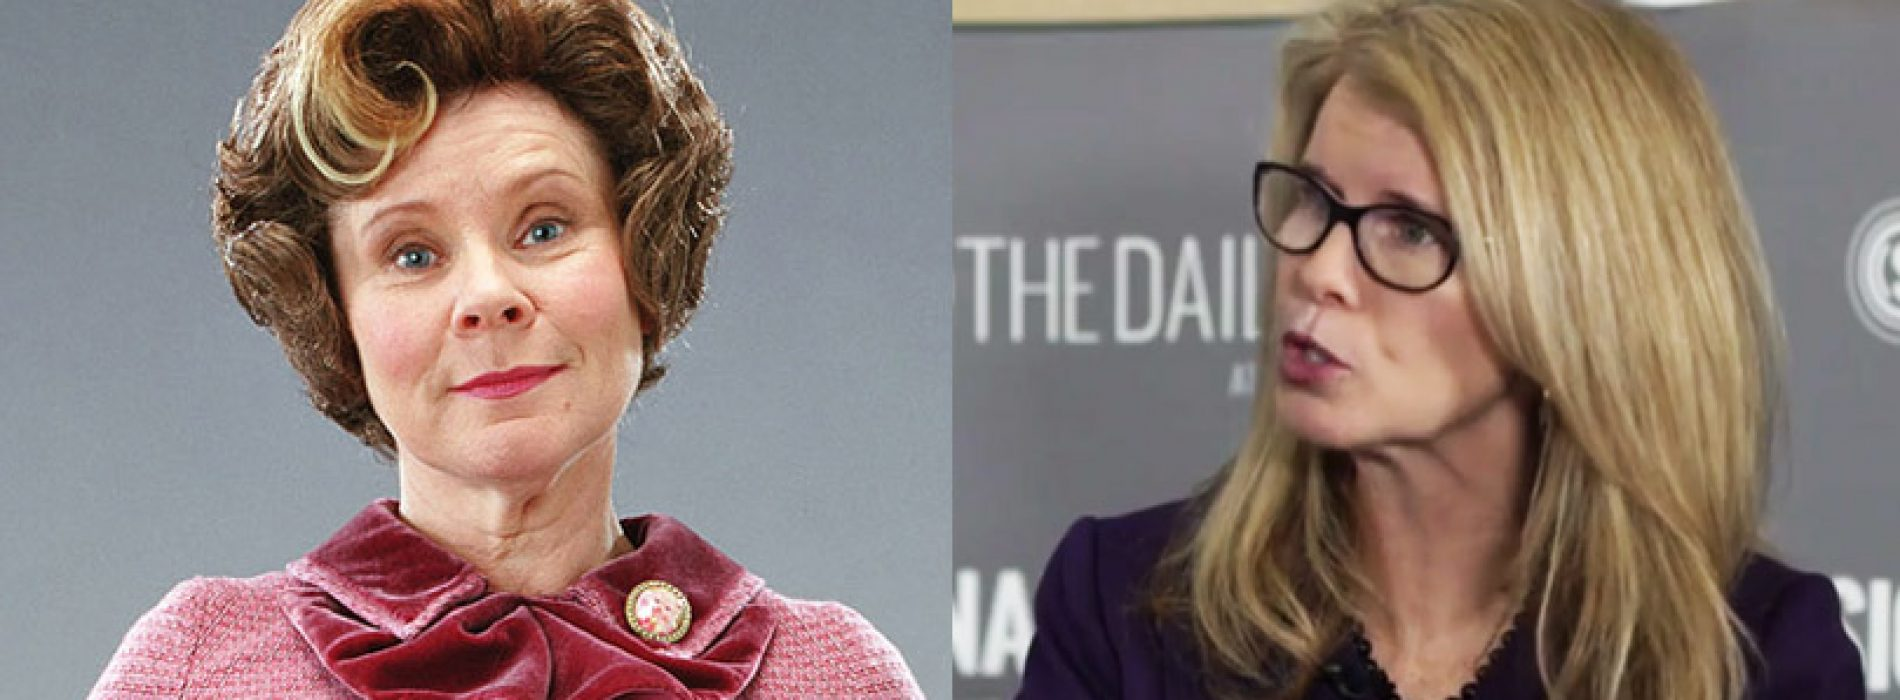 Is Mary Mayhew Dolores Umbridge and other important questions